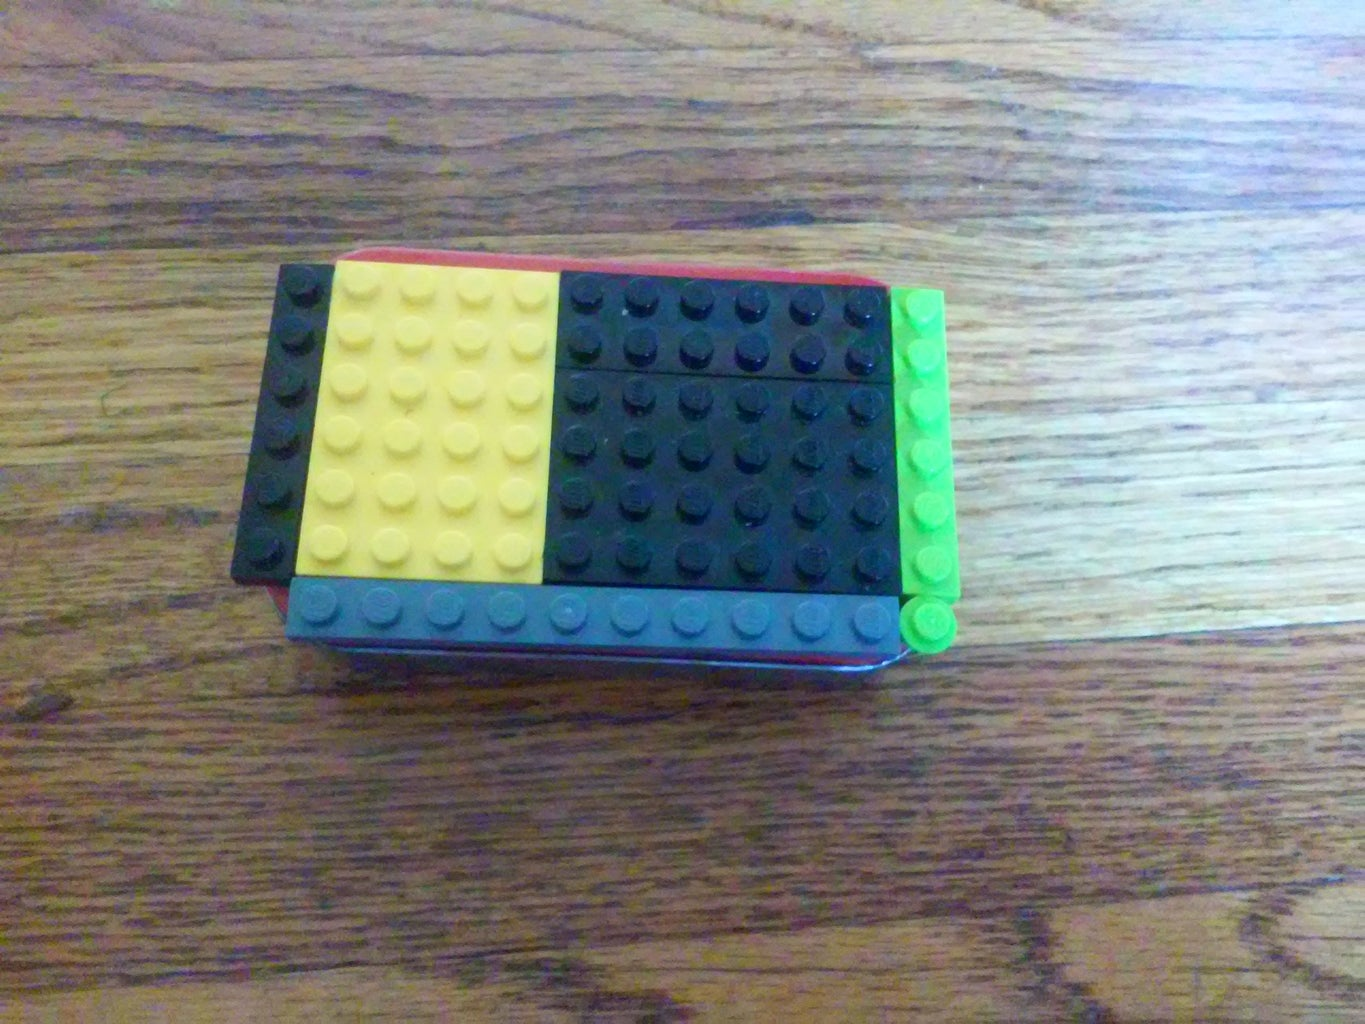 Step 1: Supergluing the LEGO's